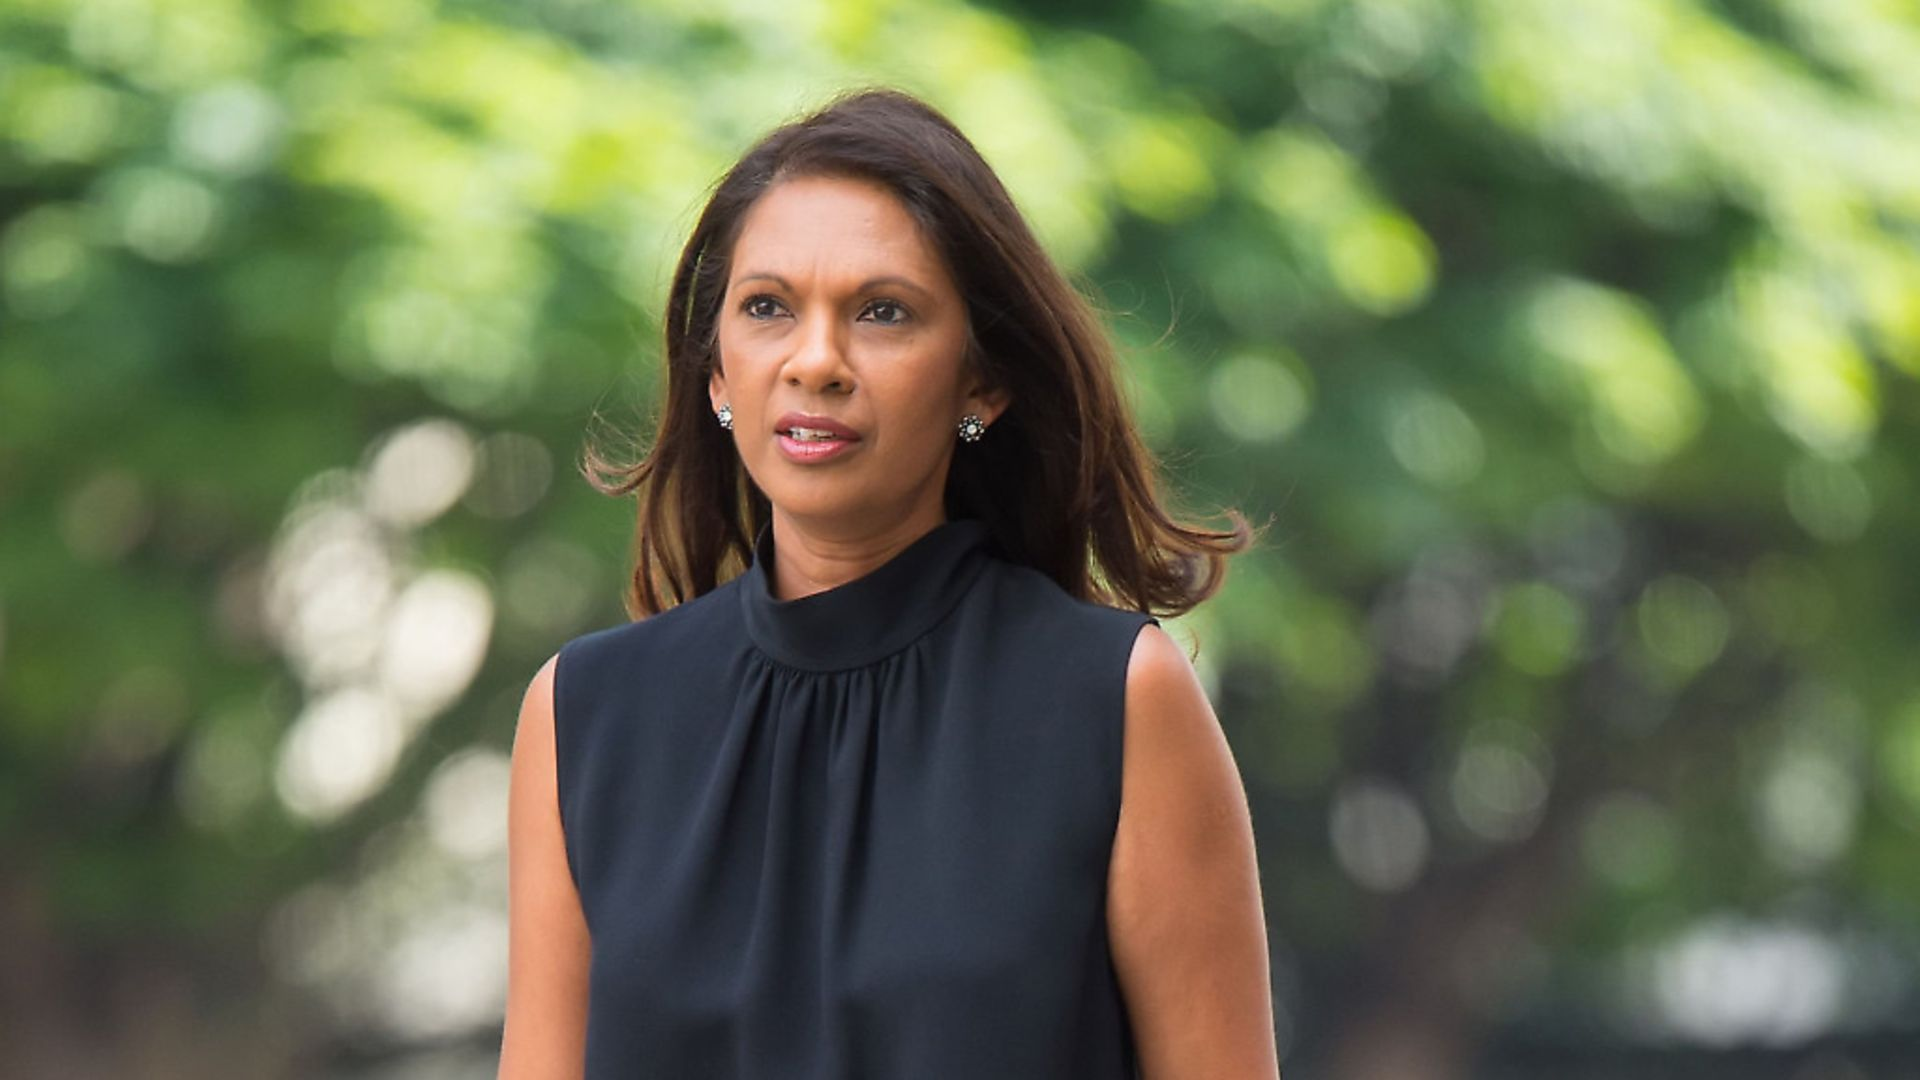 Gina Miller arrives at Westminster Magistrates' Court in London. - Credit: PA Archive/PA Images